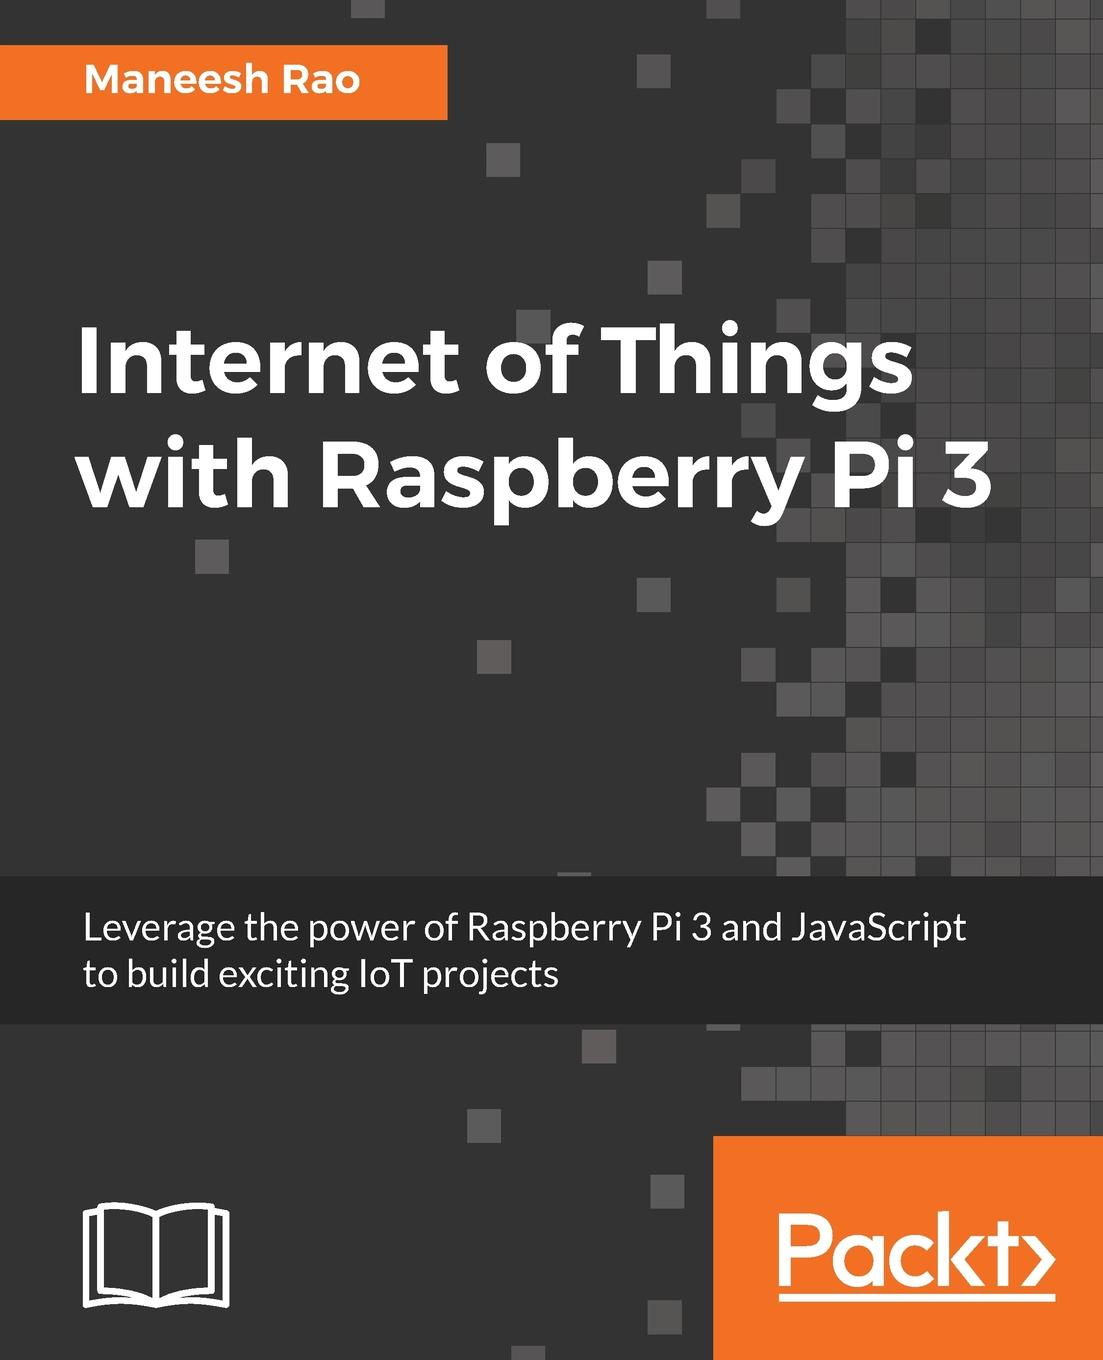 Фото - Maneesh Rao Internet of Things with Raspberry Pi 3 радиаторы для raspberry pi 3 pi 2 3шт